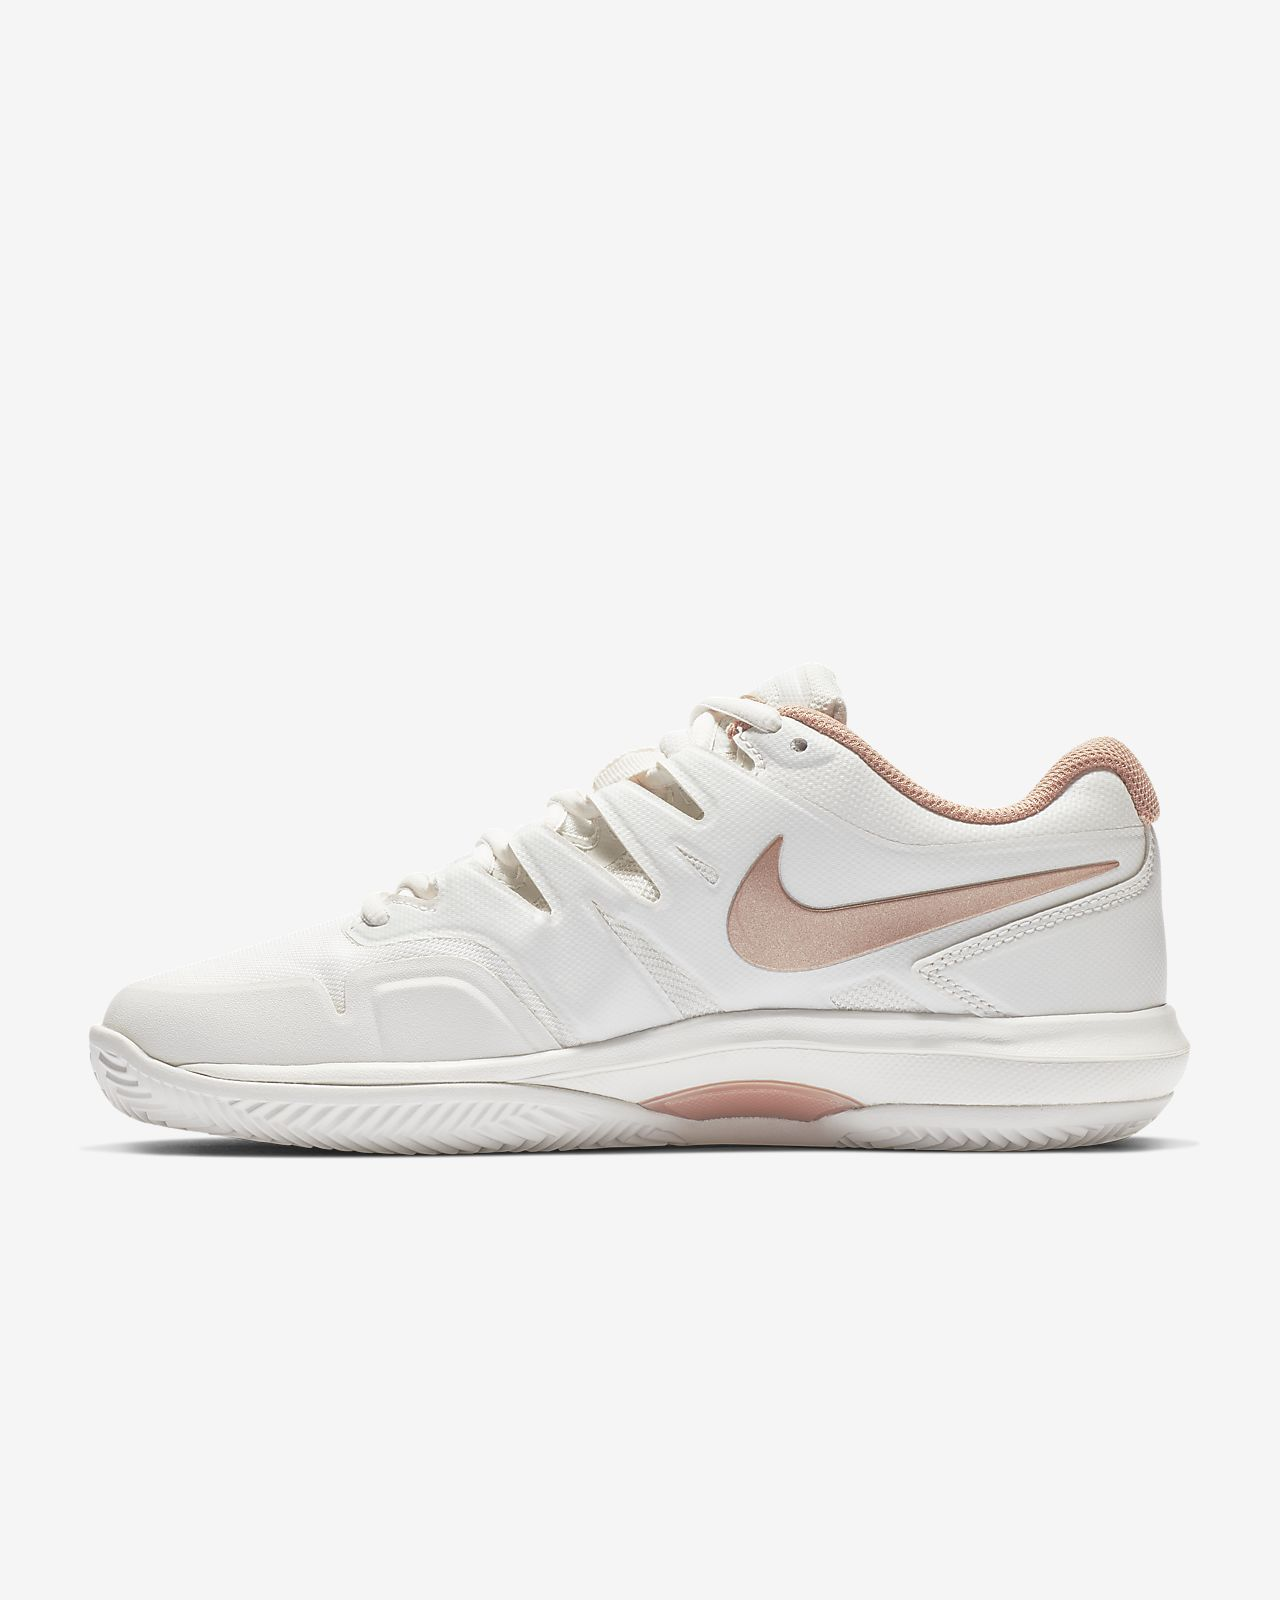 Nike Air Zoom Prestige Clay tennissko til dame